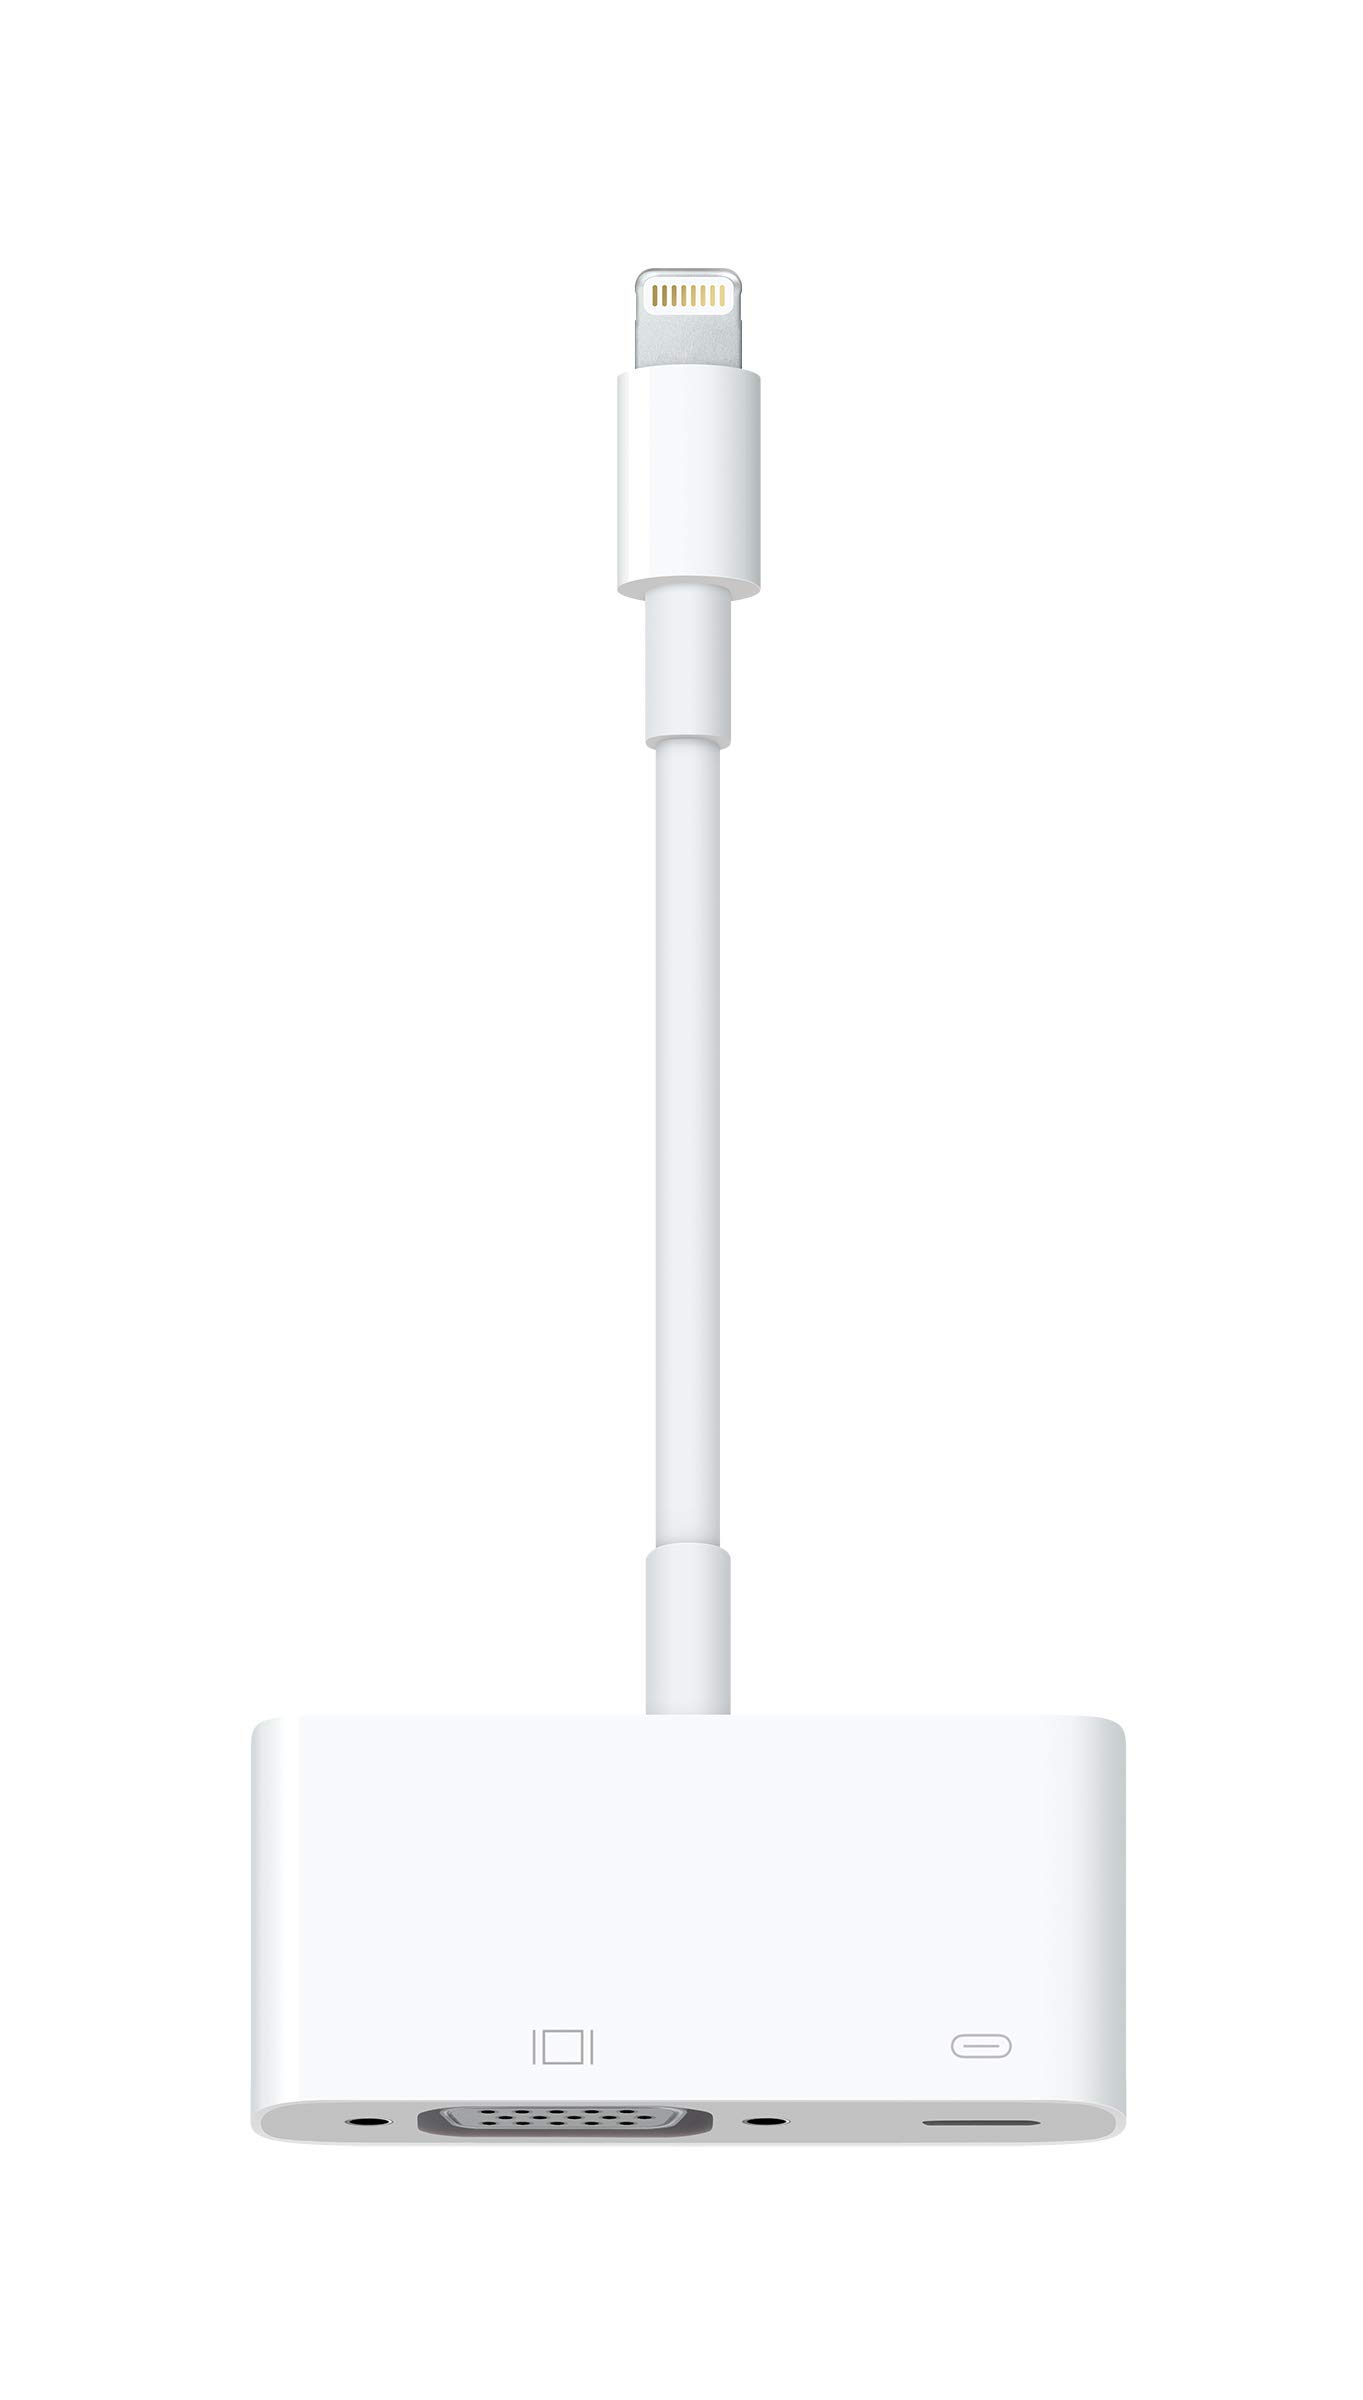 애플 Apple Lightning to VGA Adapter